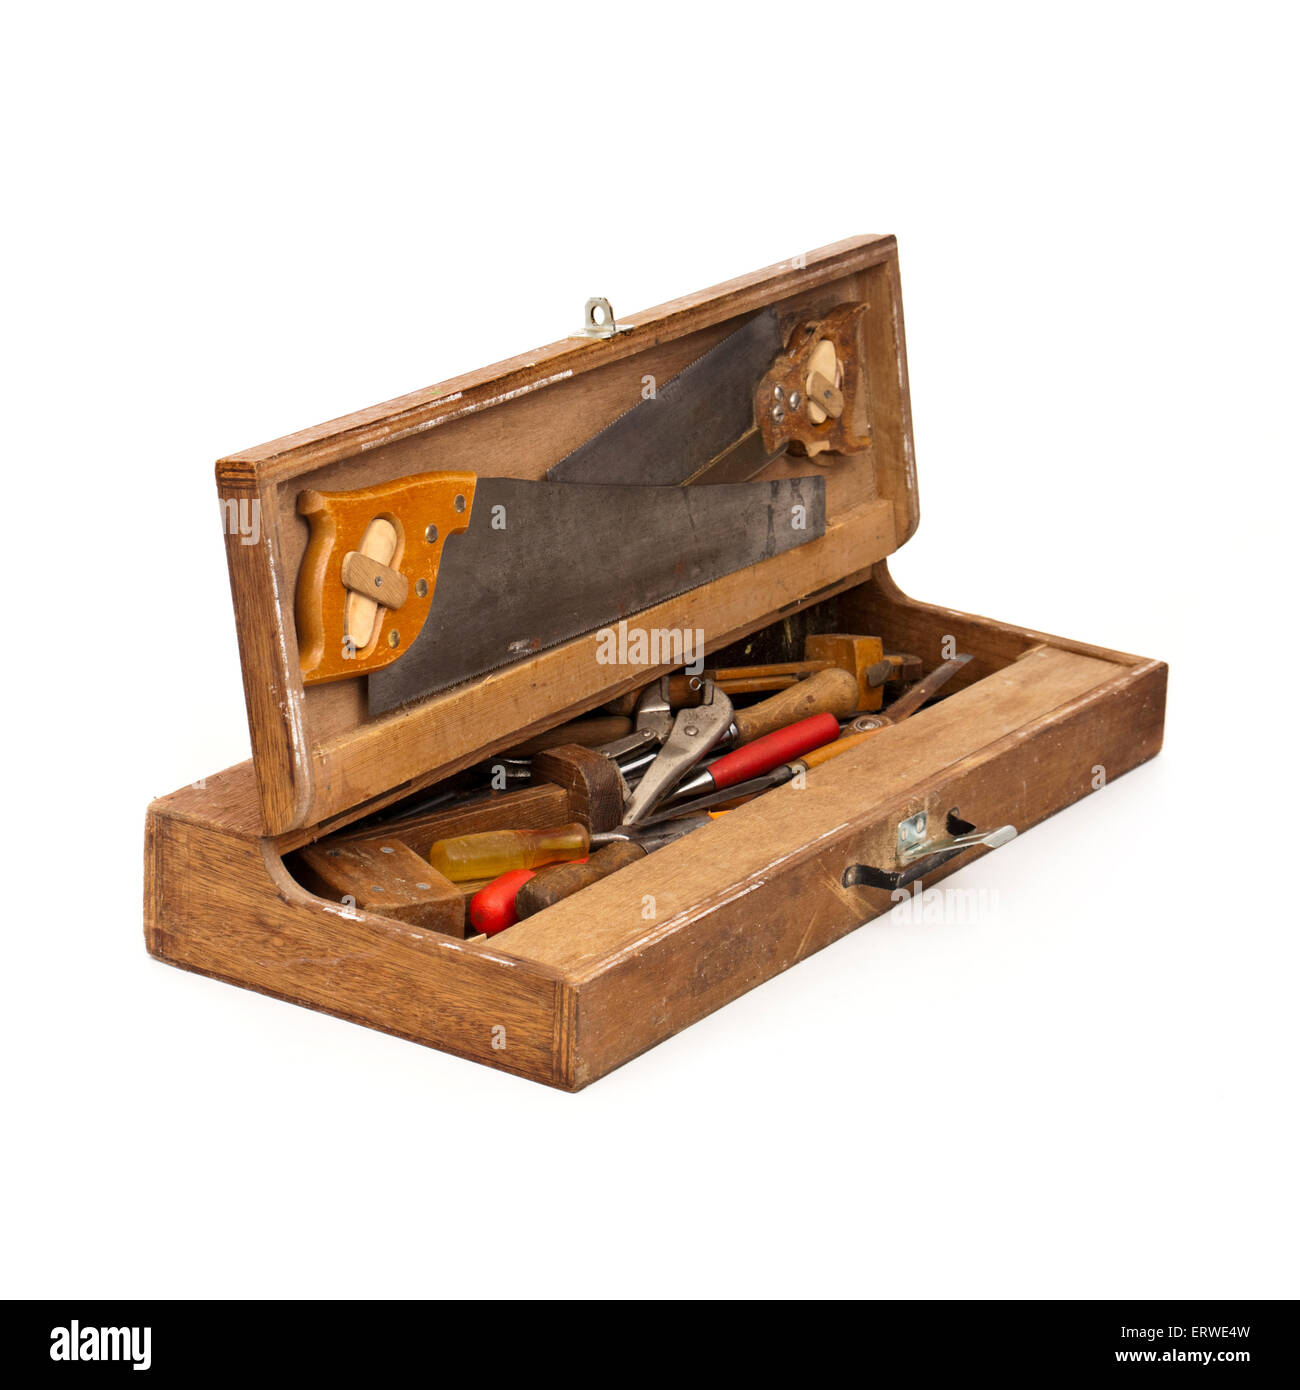 Vintage Handmade Wooden Toolbox With Carpentry Tools Stock Photo